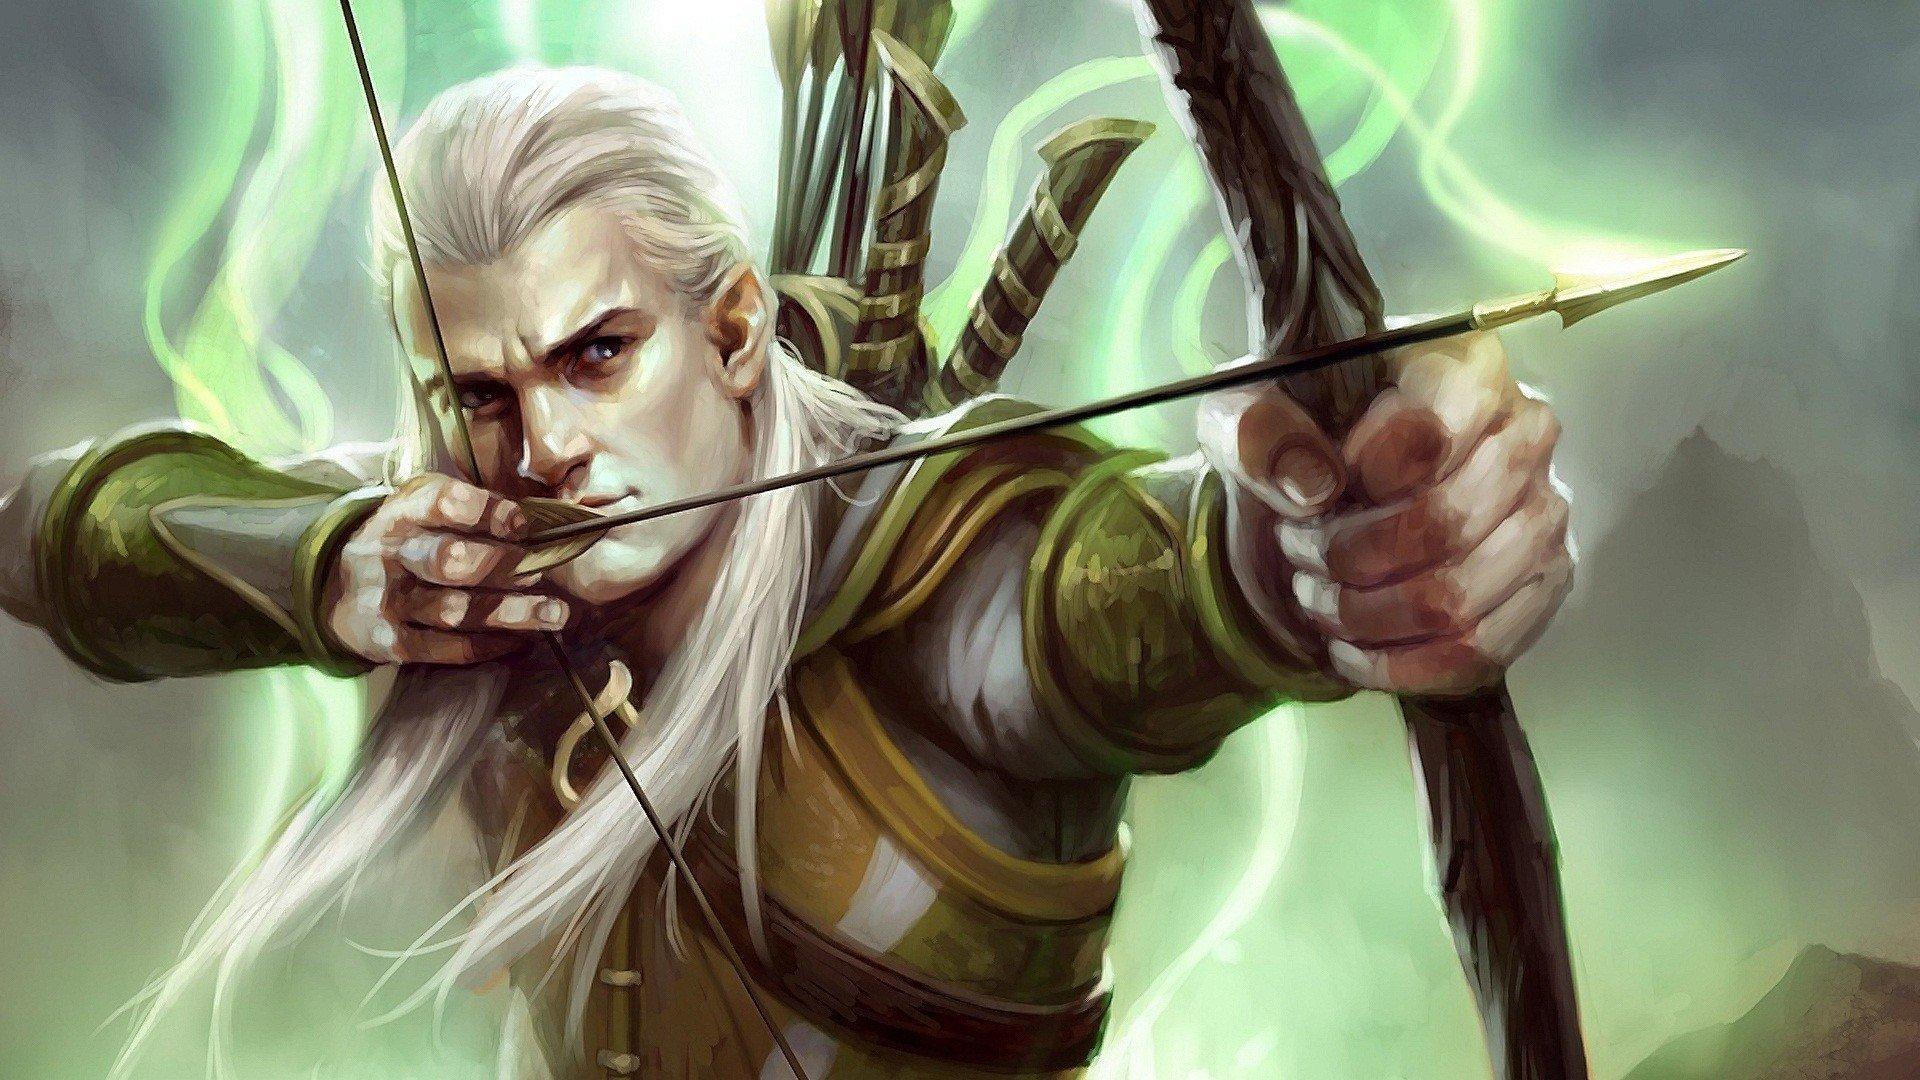 Archers The Lord of the Rings elves artwork Legolas bow ...